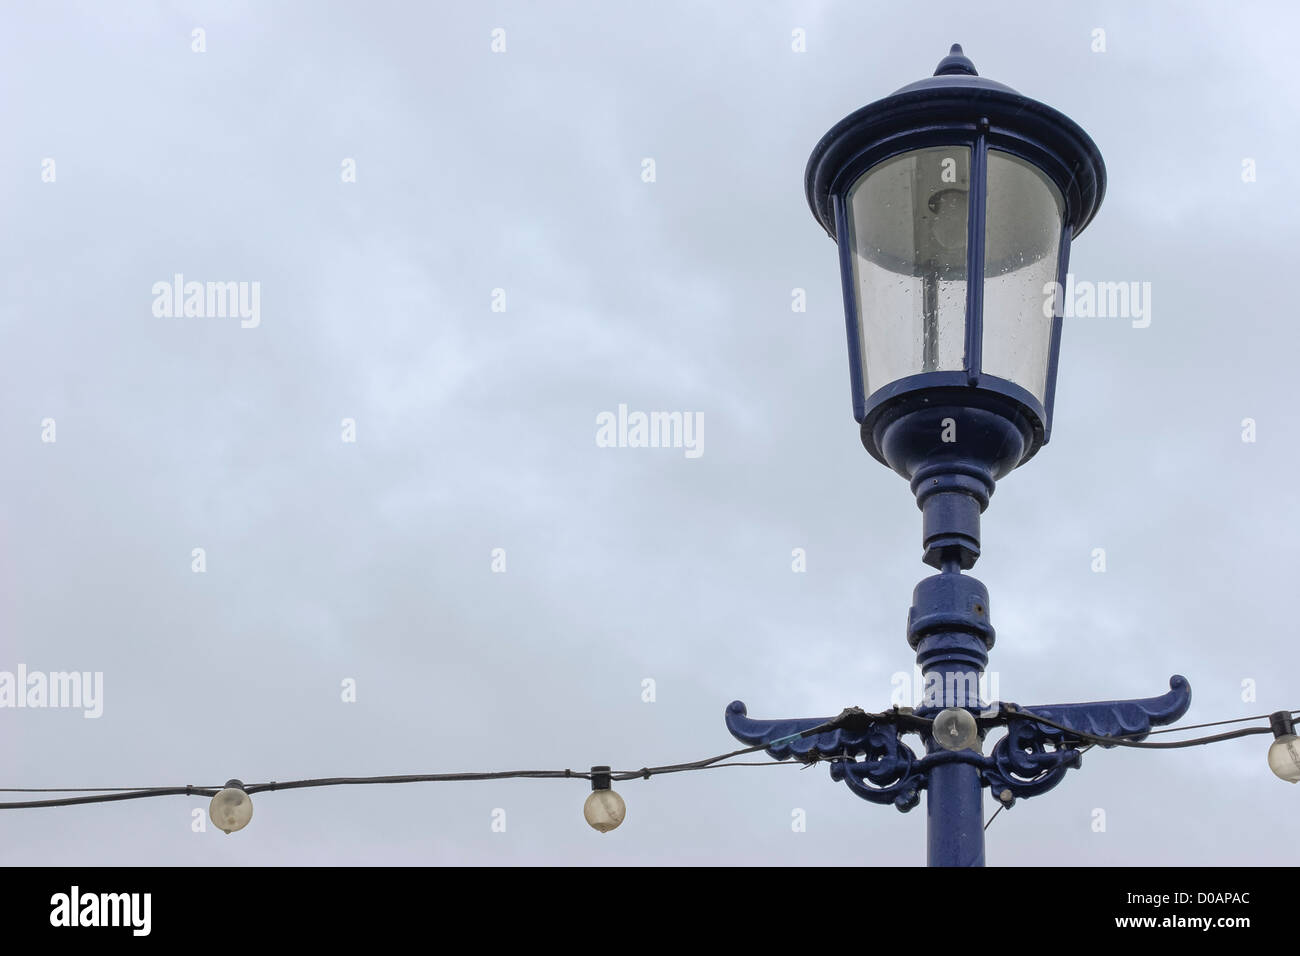 Street Lamp Set in Front of an Overcast Sky on Eastborne Pier - Stock Image